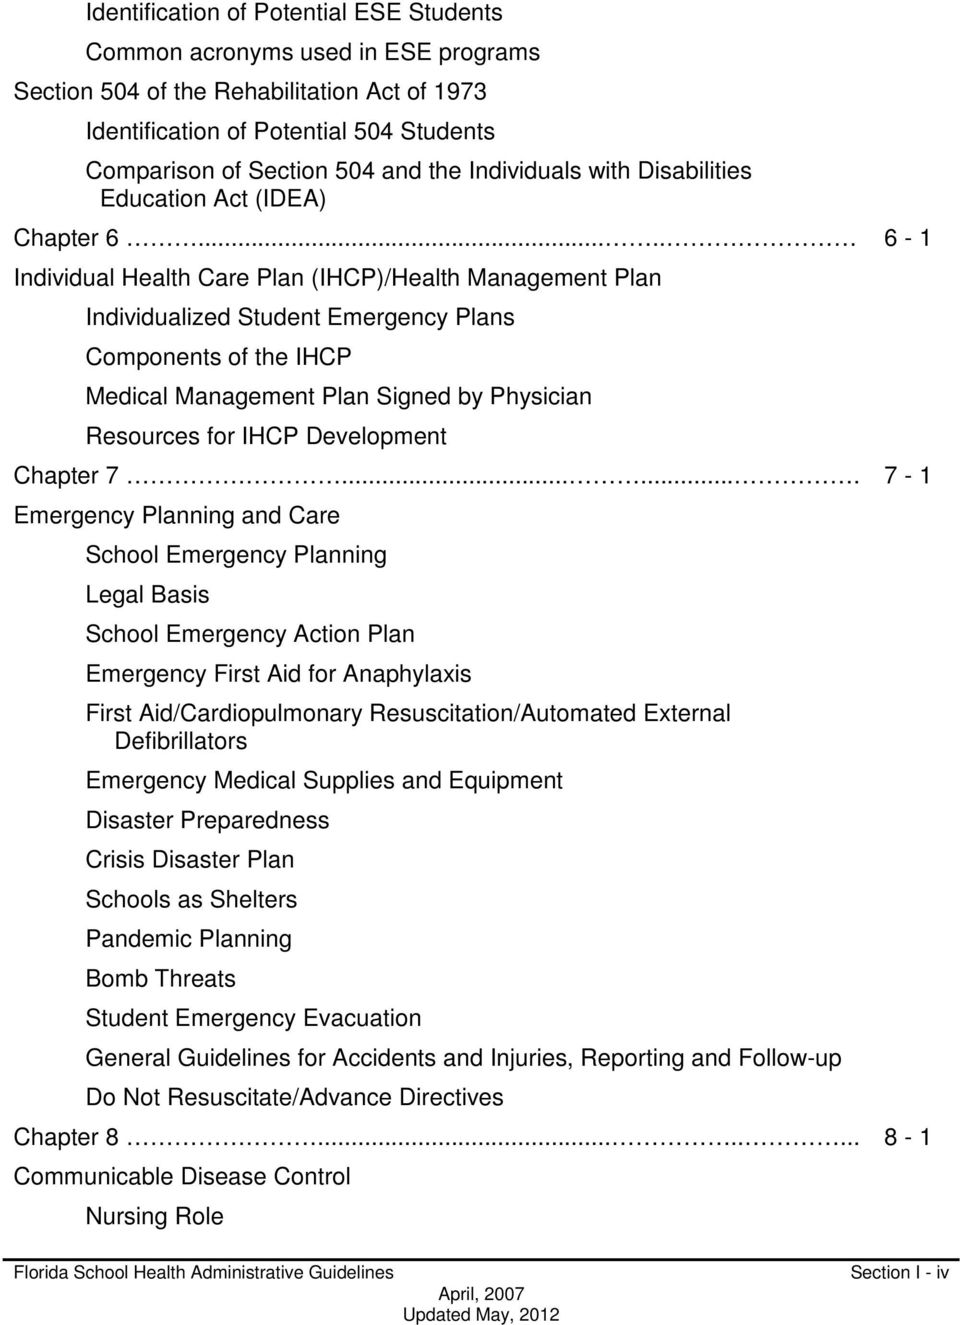 .... Individual Health Care Plan (IHCP)/Health Management Plan Individualized Student Emergency Plans Components of the IHCP Medical Management Plan Signed by Physician Resources for IHCP Development